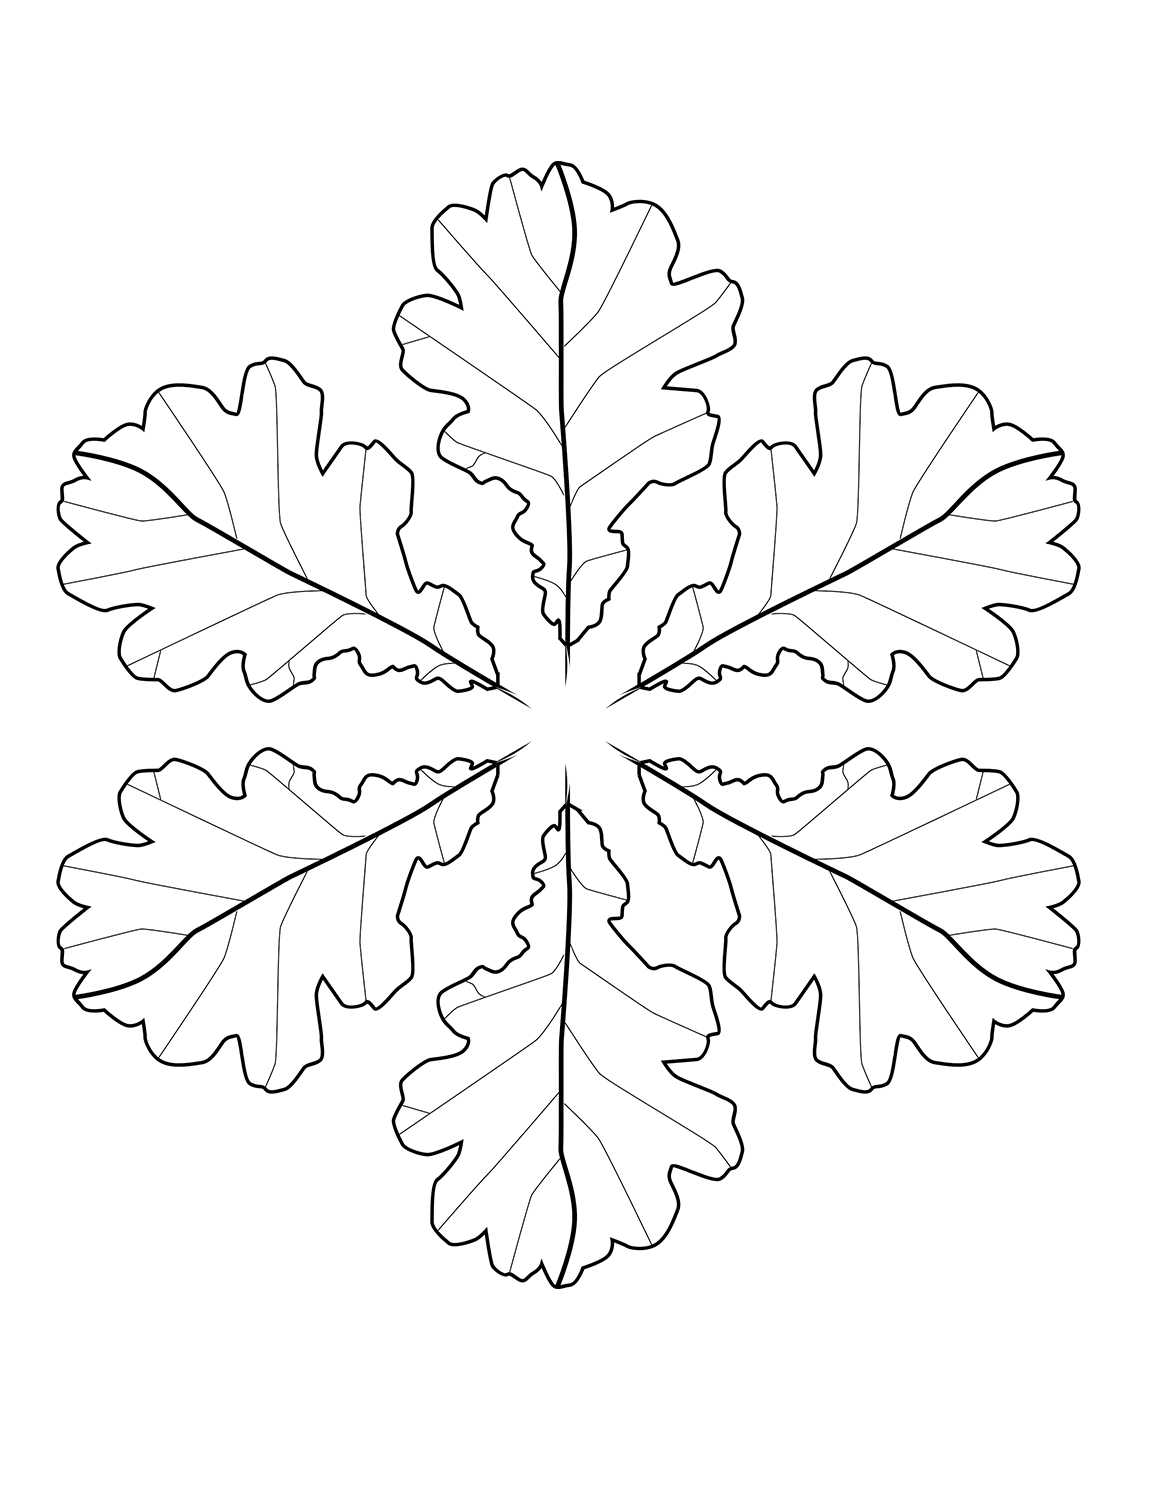 5 Free Fall Coloring Sheets: Autumn Season Coloring Pages ...